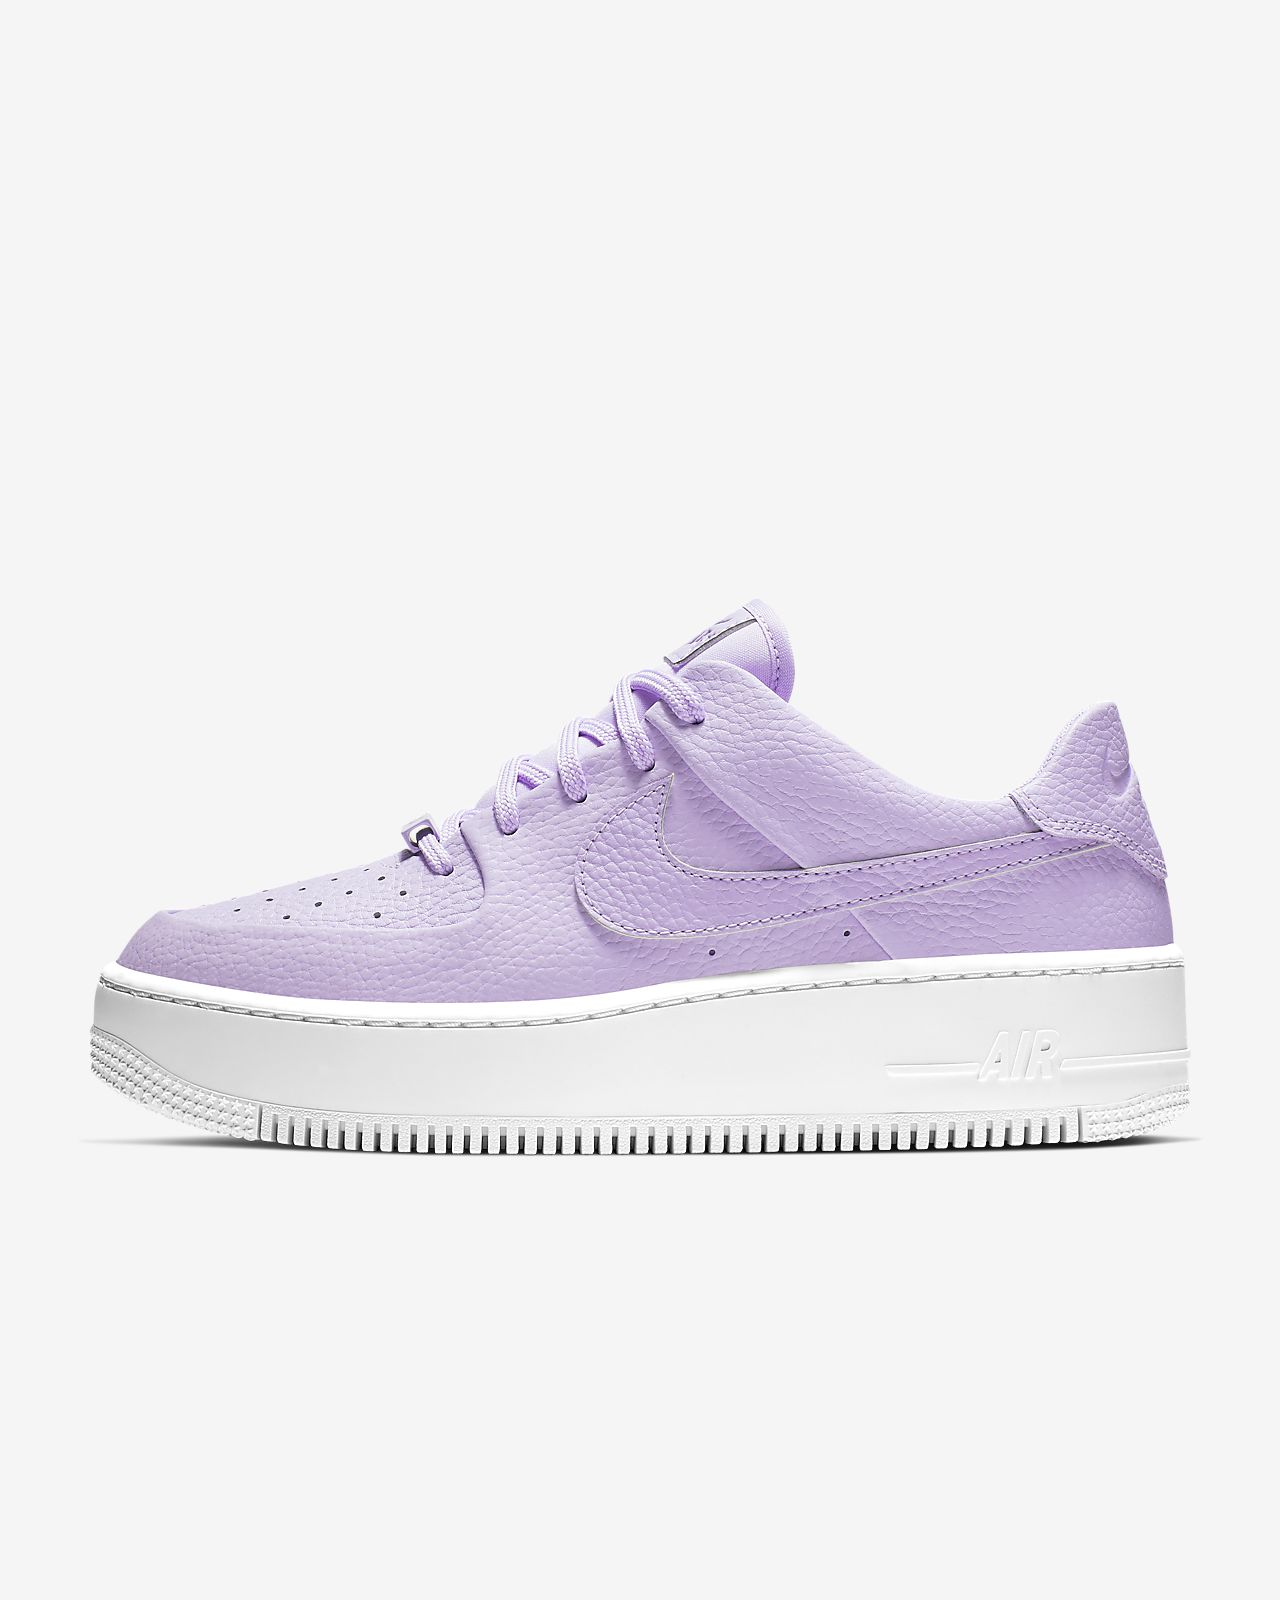 official photos bced5 48f8c ... Chaussure Nike Air Force 1 Sage Low pour Femme